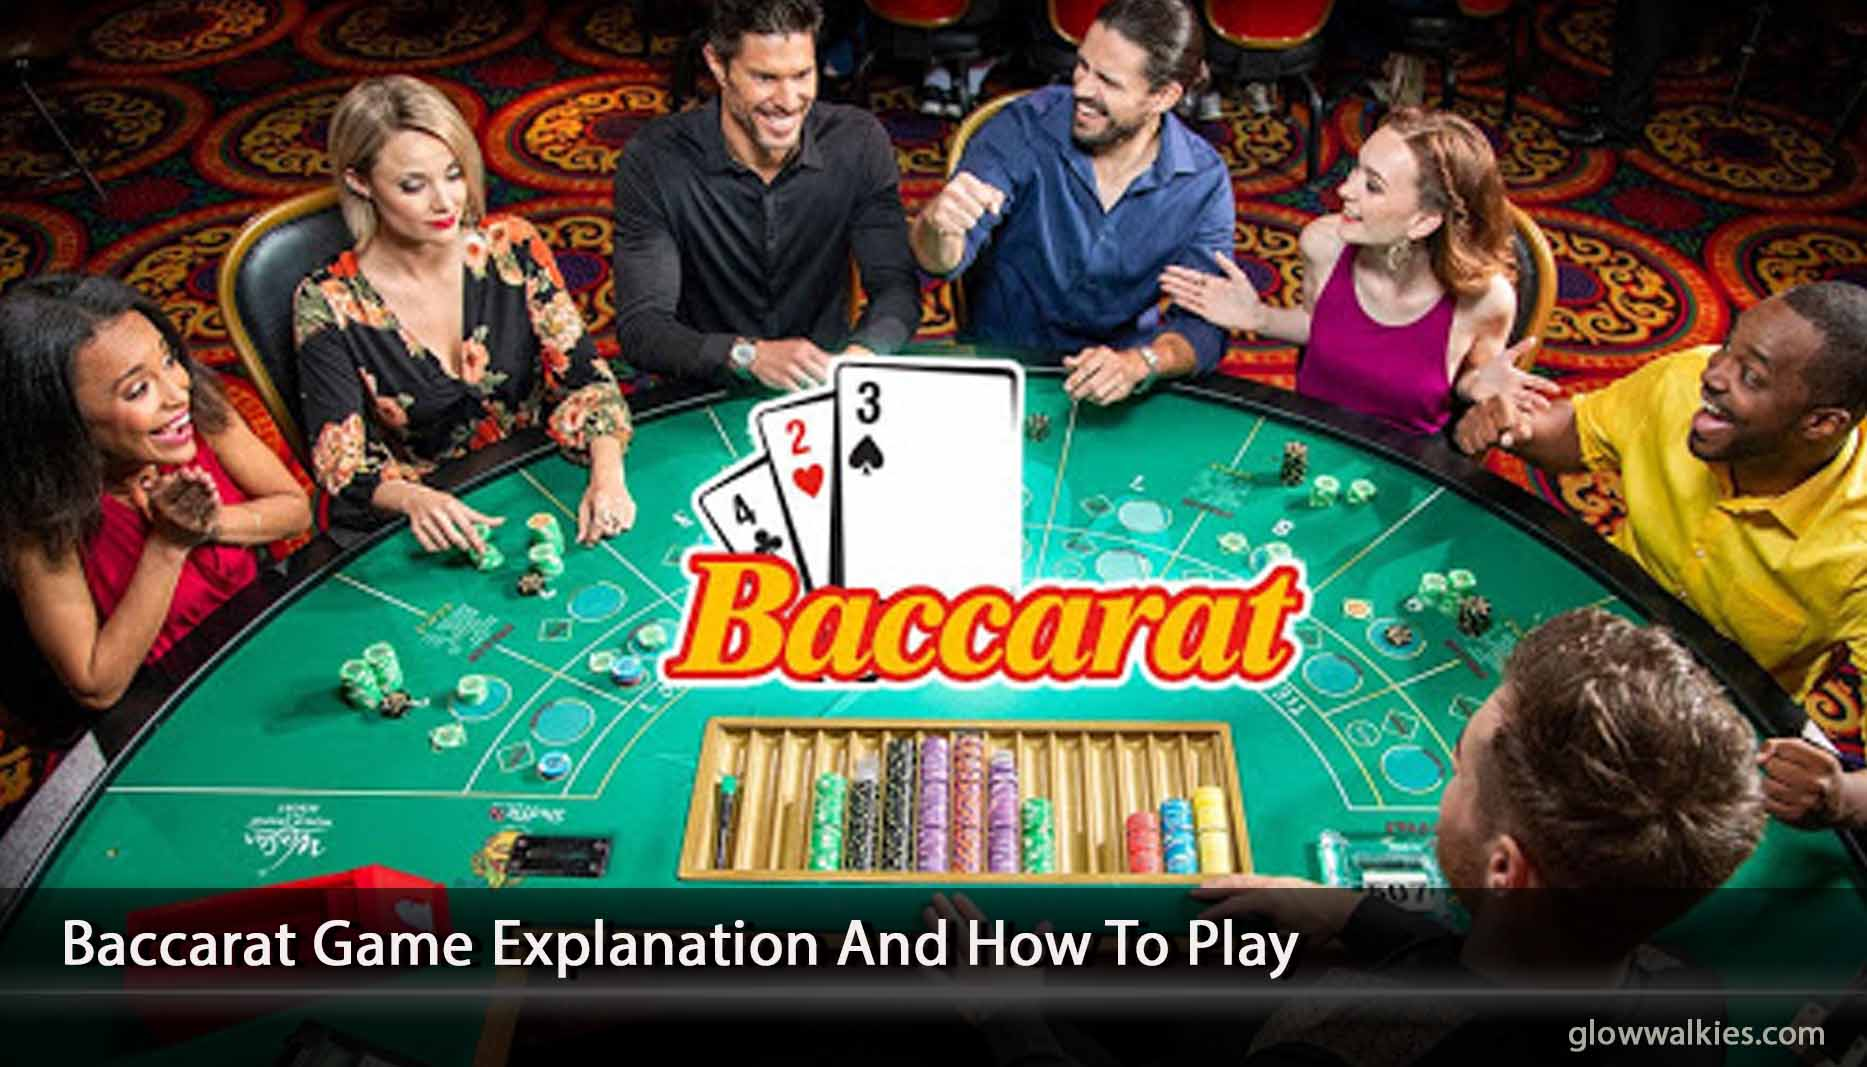 Baccarat Game Explanation And How To Play